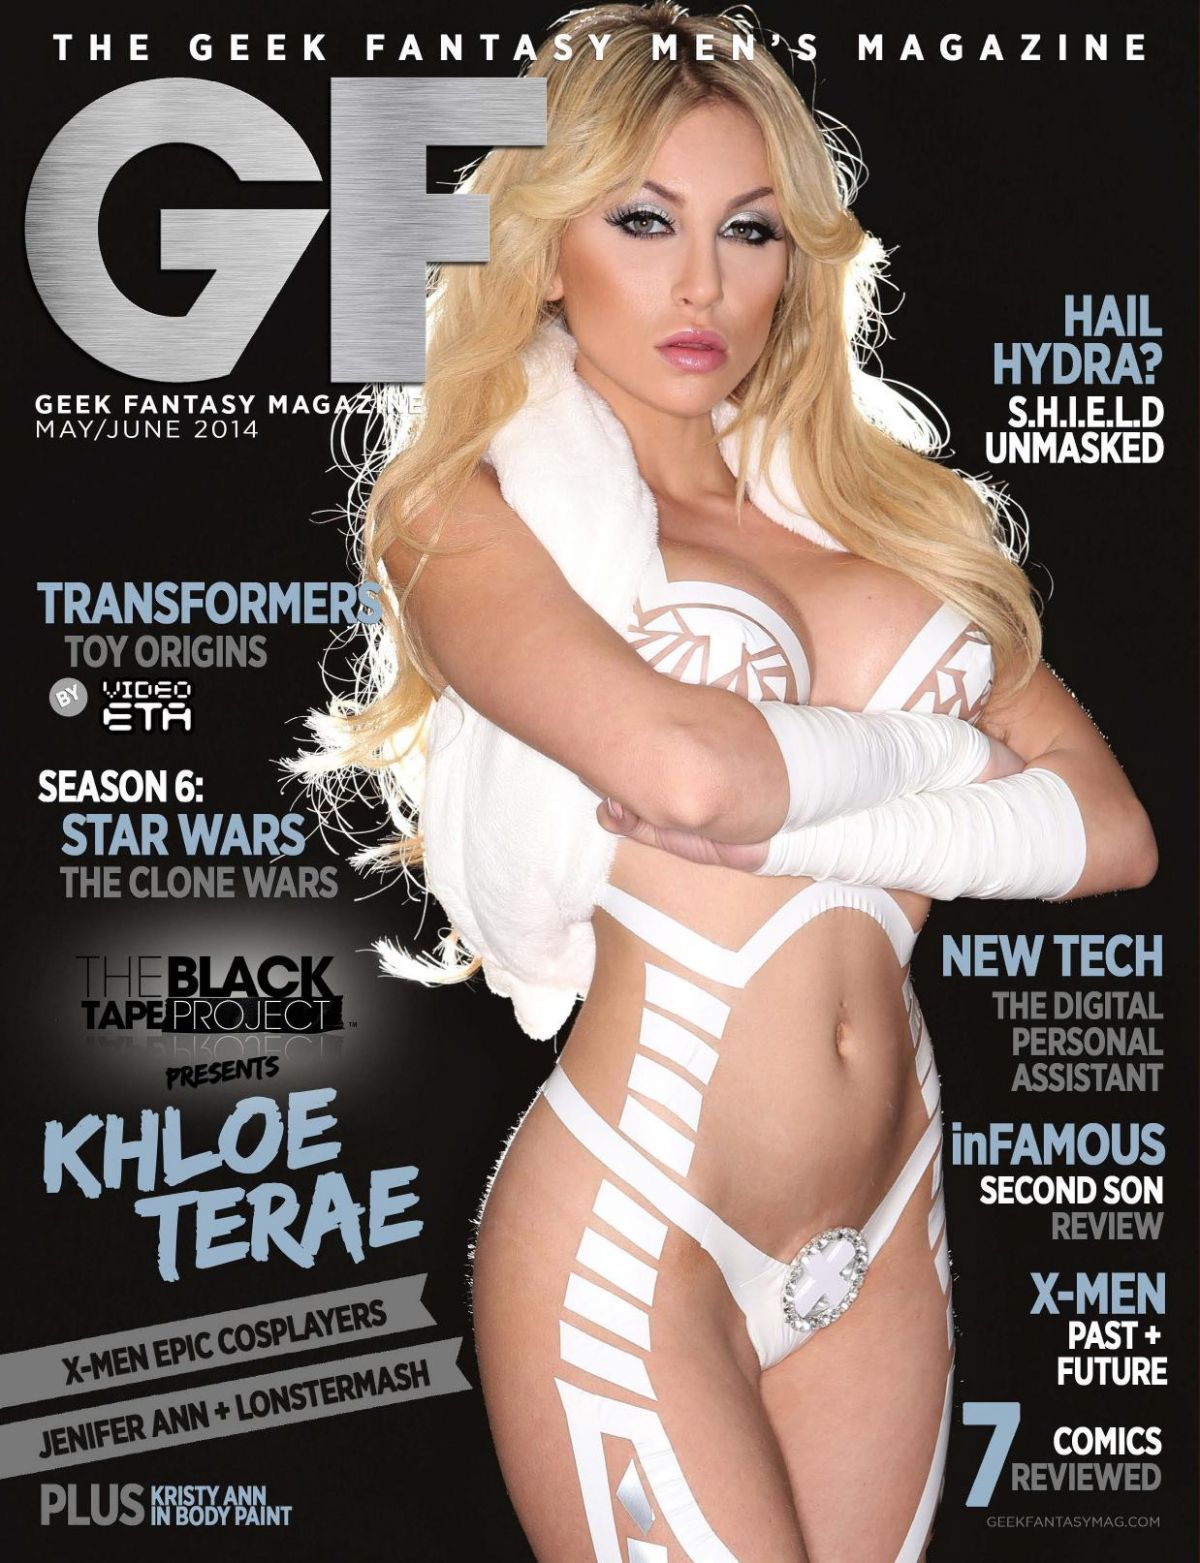 KHLOE TERAE in Geek Fantasy Magazine, May/June 2014 Issue